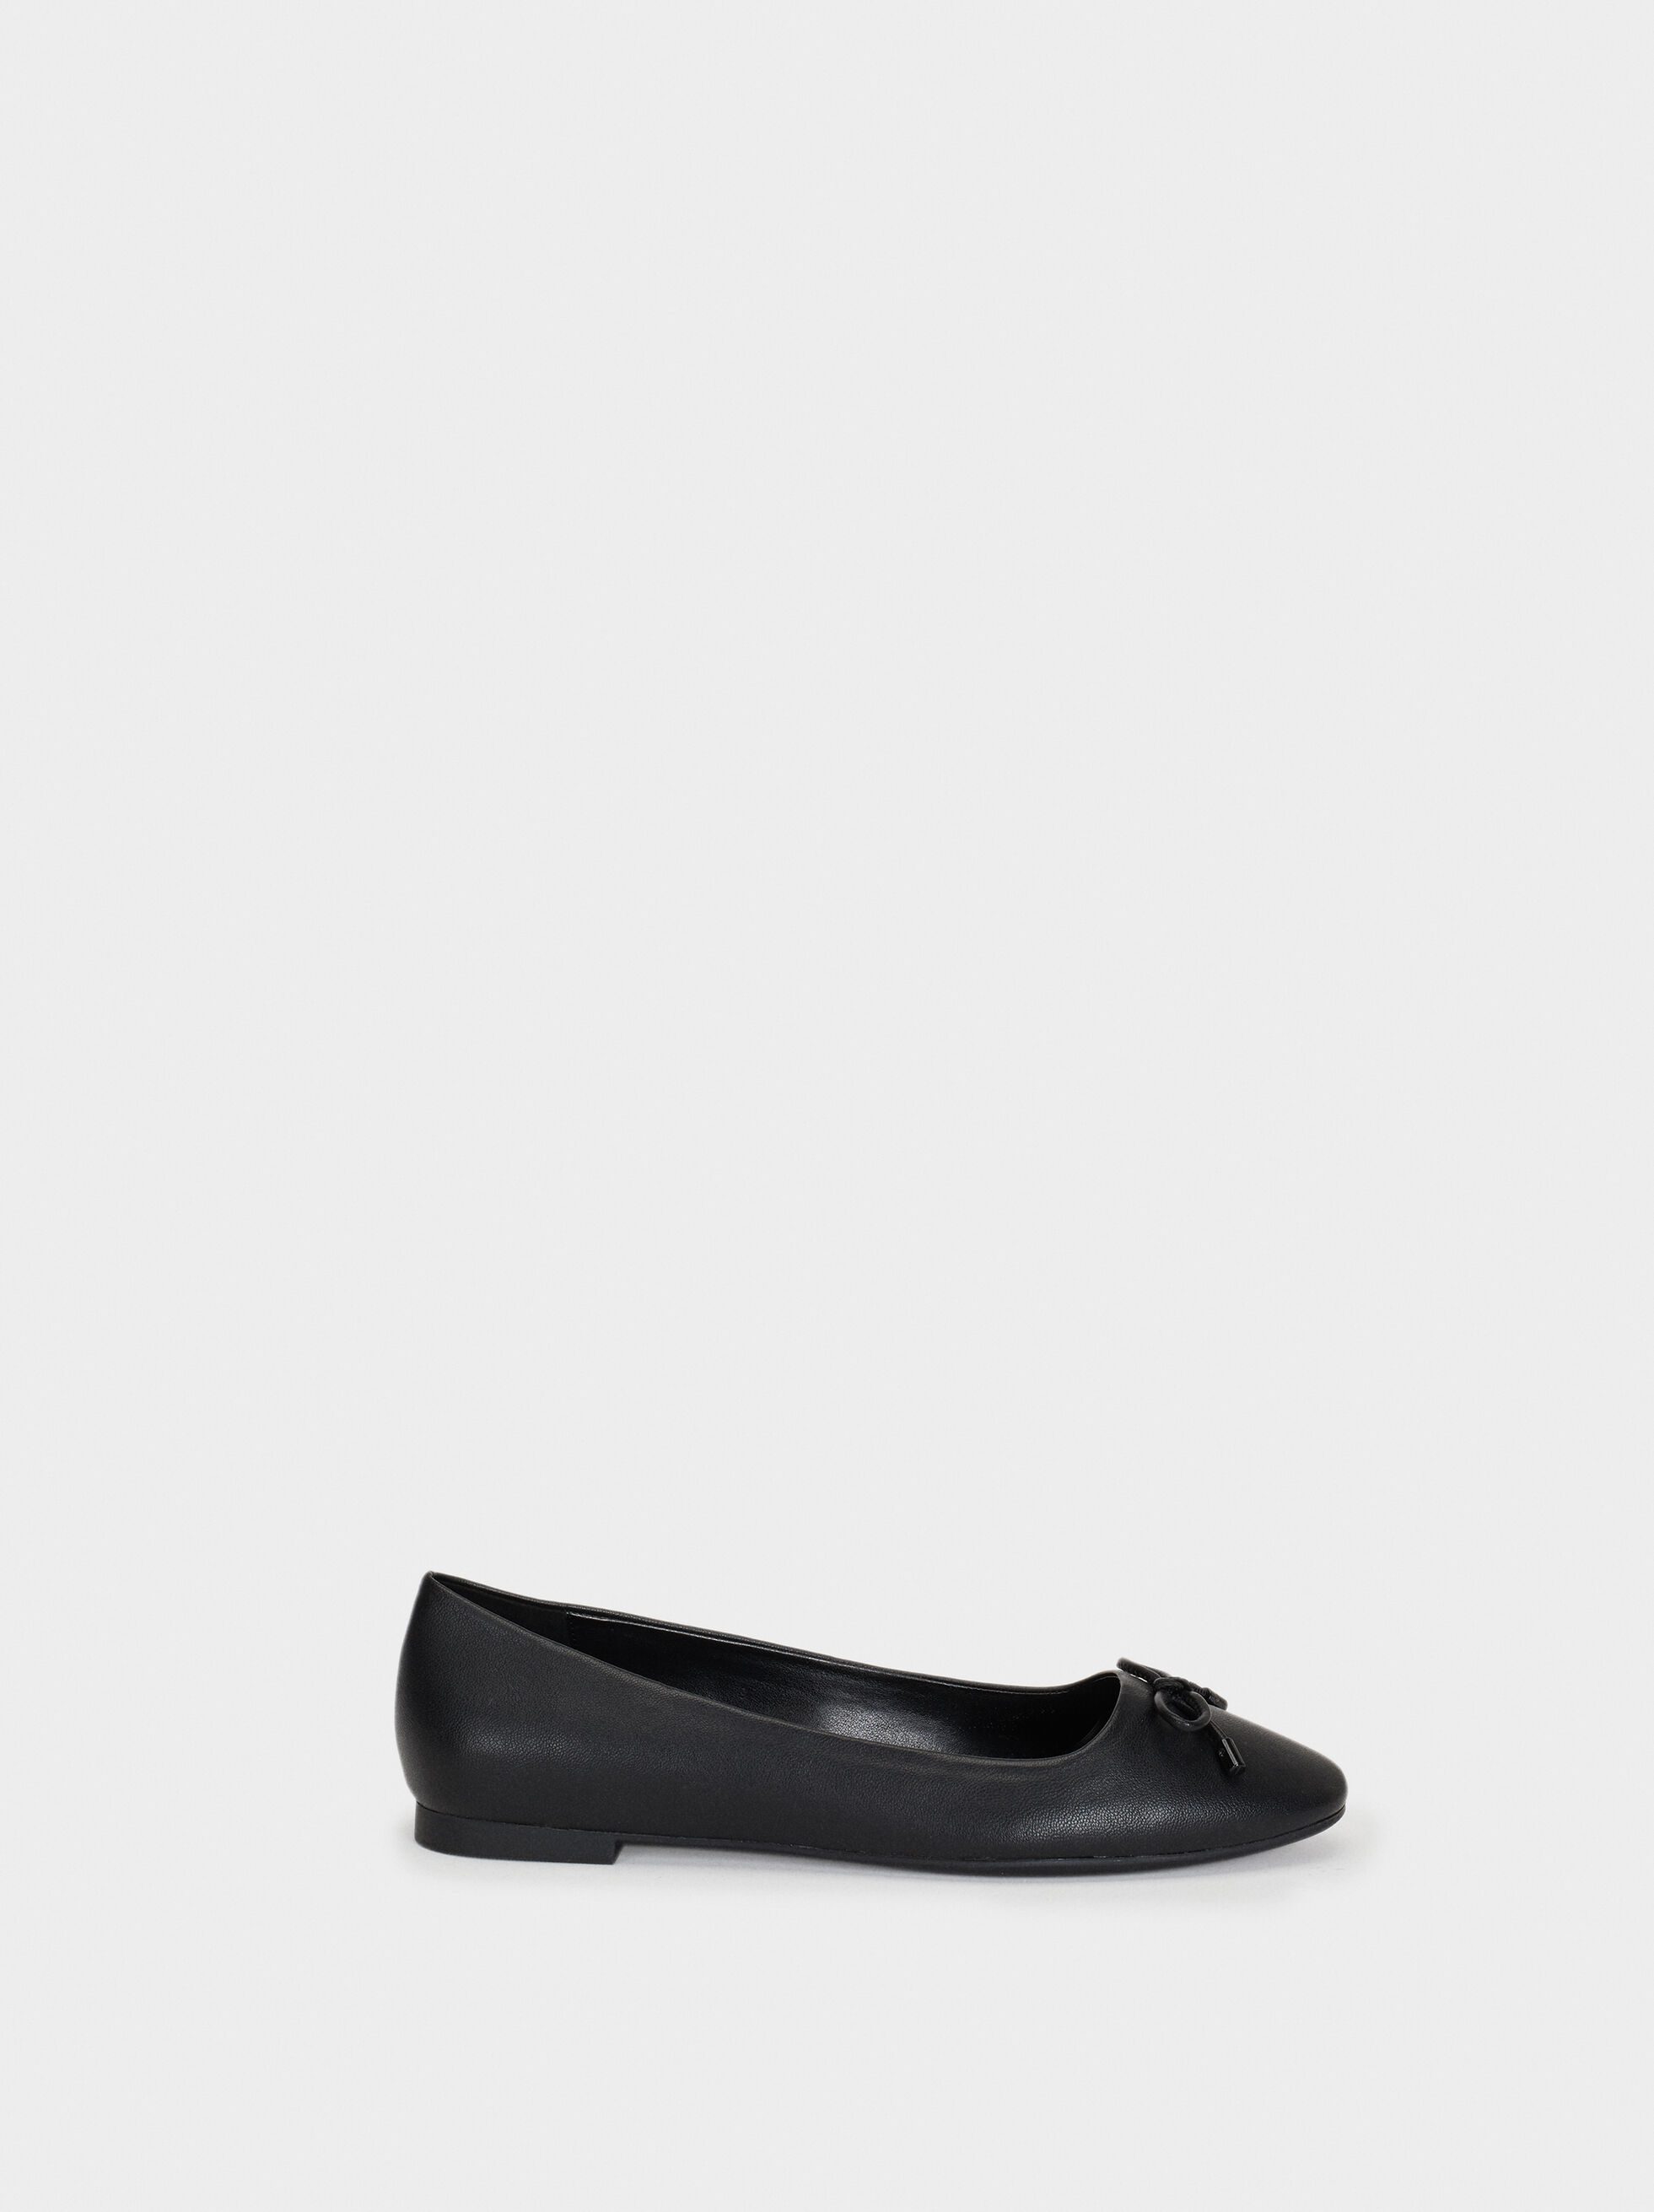 Basic Ballerinas, Black, hi-res